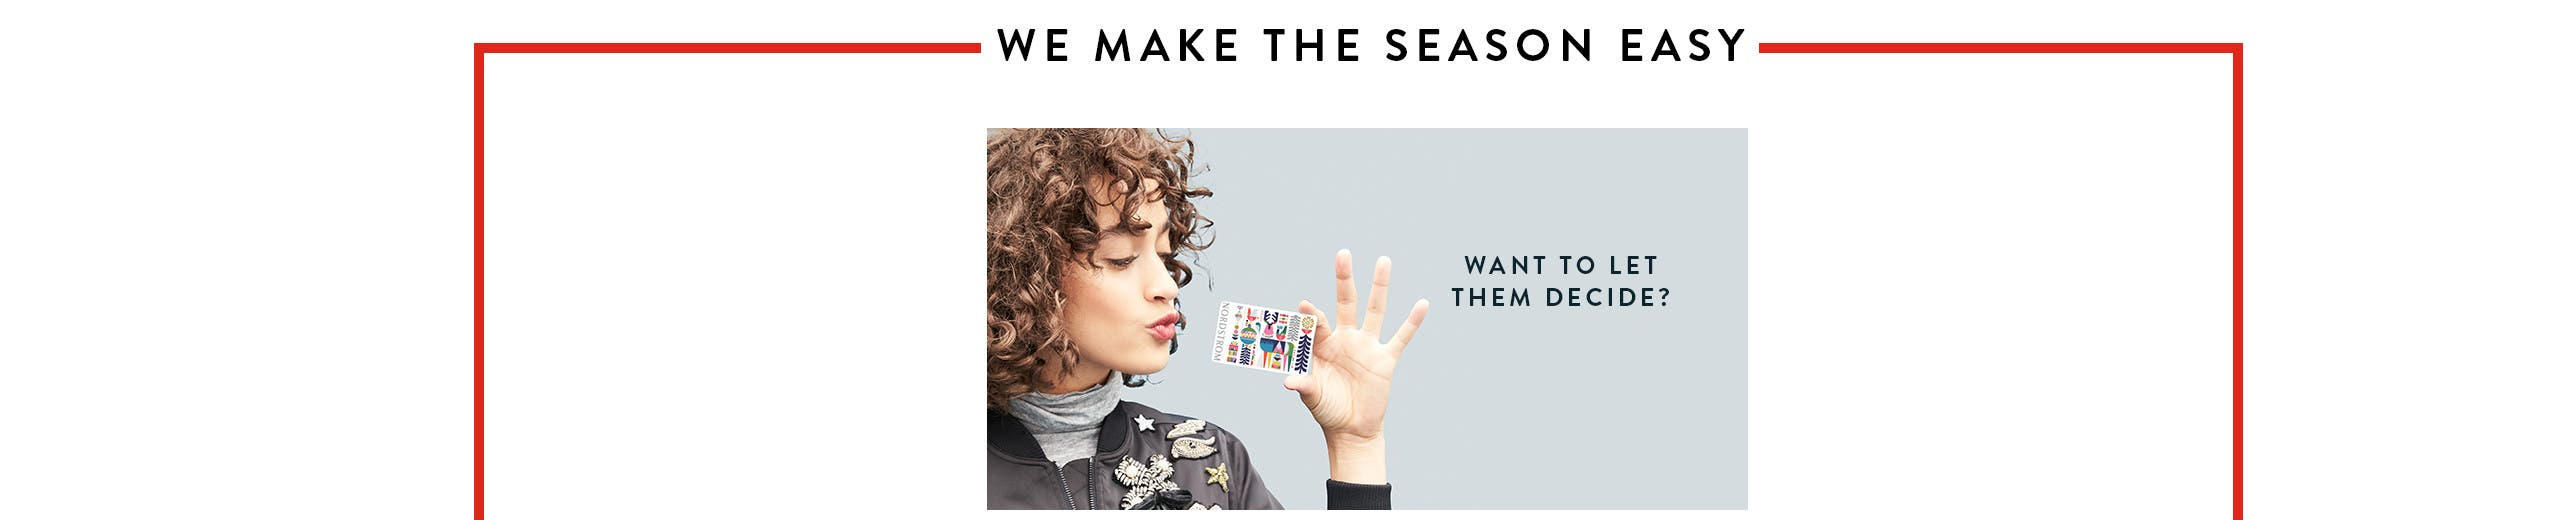 Want to let them decide? Get a holiday gift card.